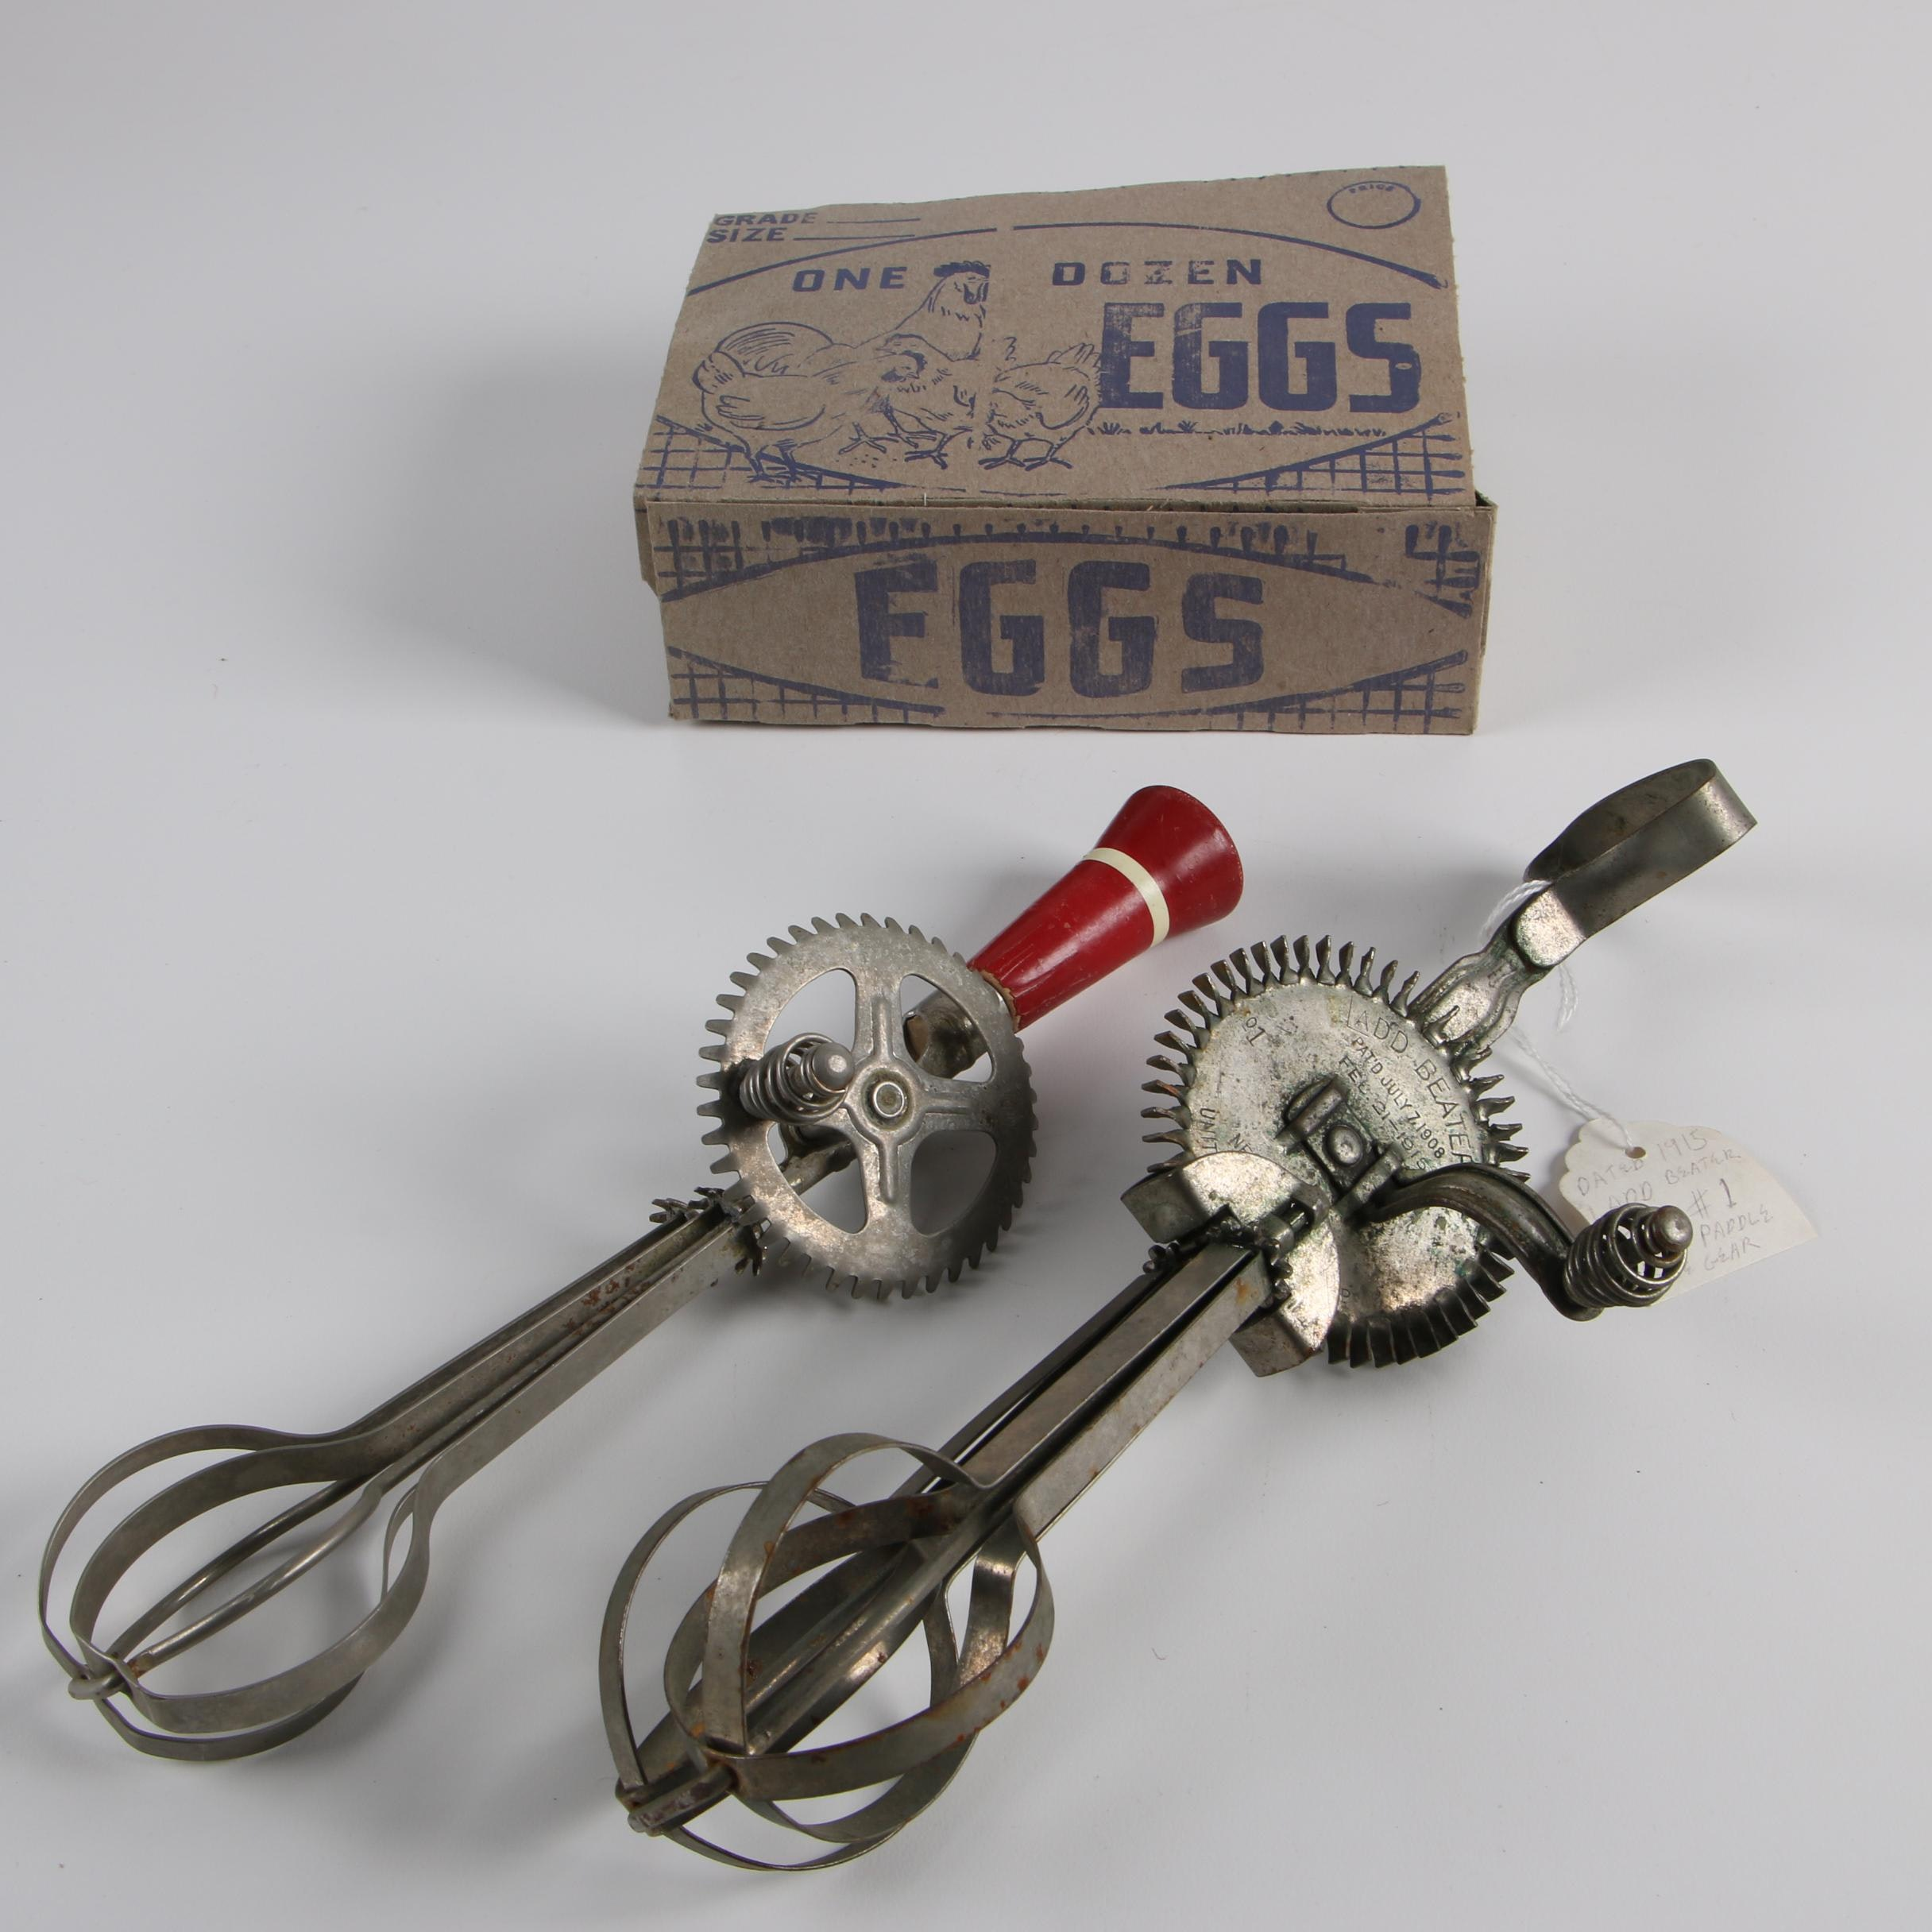 Antique and Vintage Egg Beaters and Egg Carton featuring Ladd